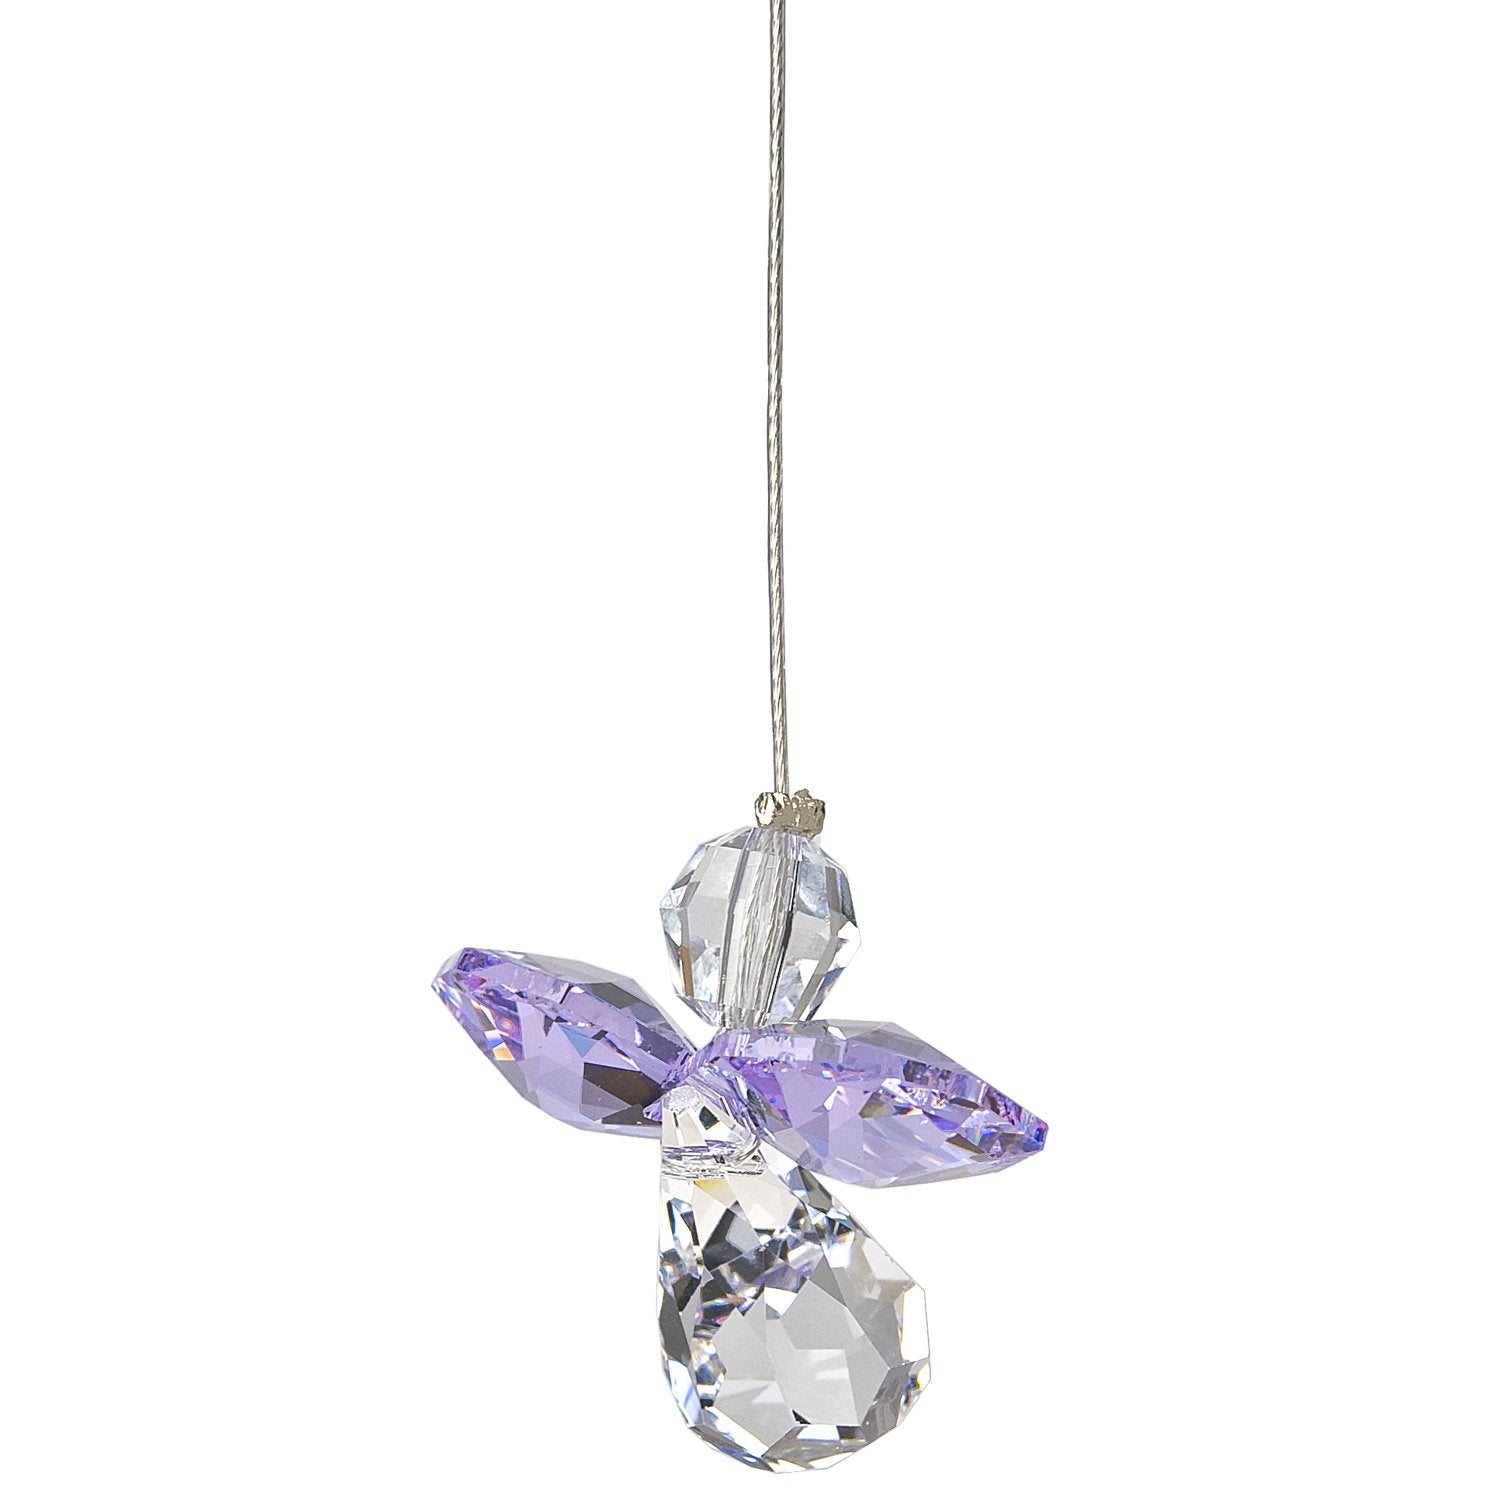 Crystal Guardian Angel Suncatcher - Light Amethyst (June) alternate product image